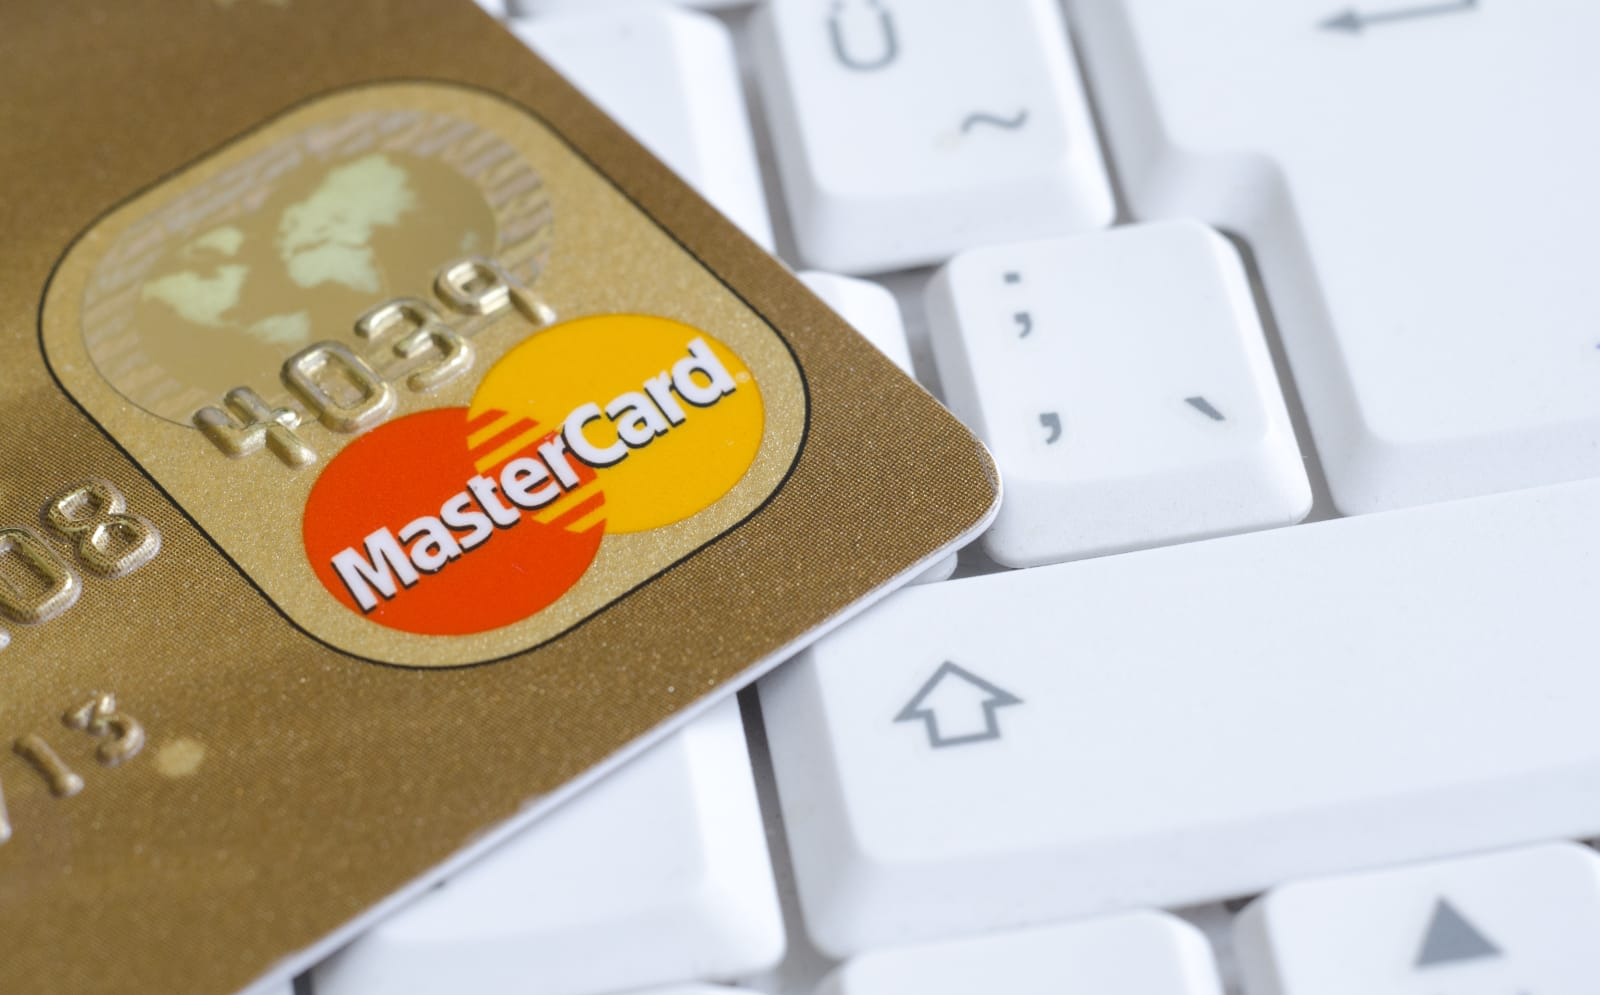 Google and Mastercard reportedly teamed up to track offline